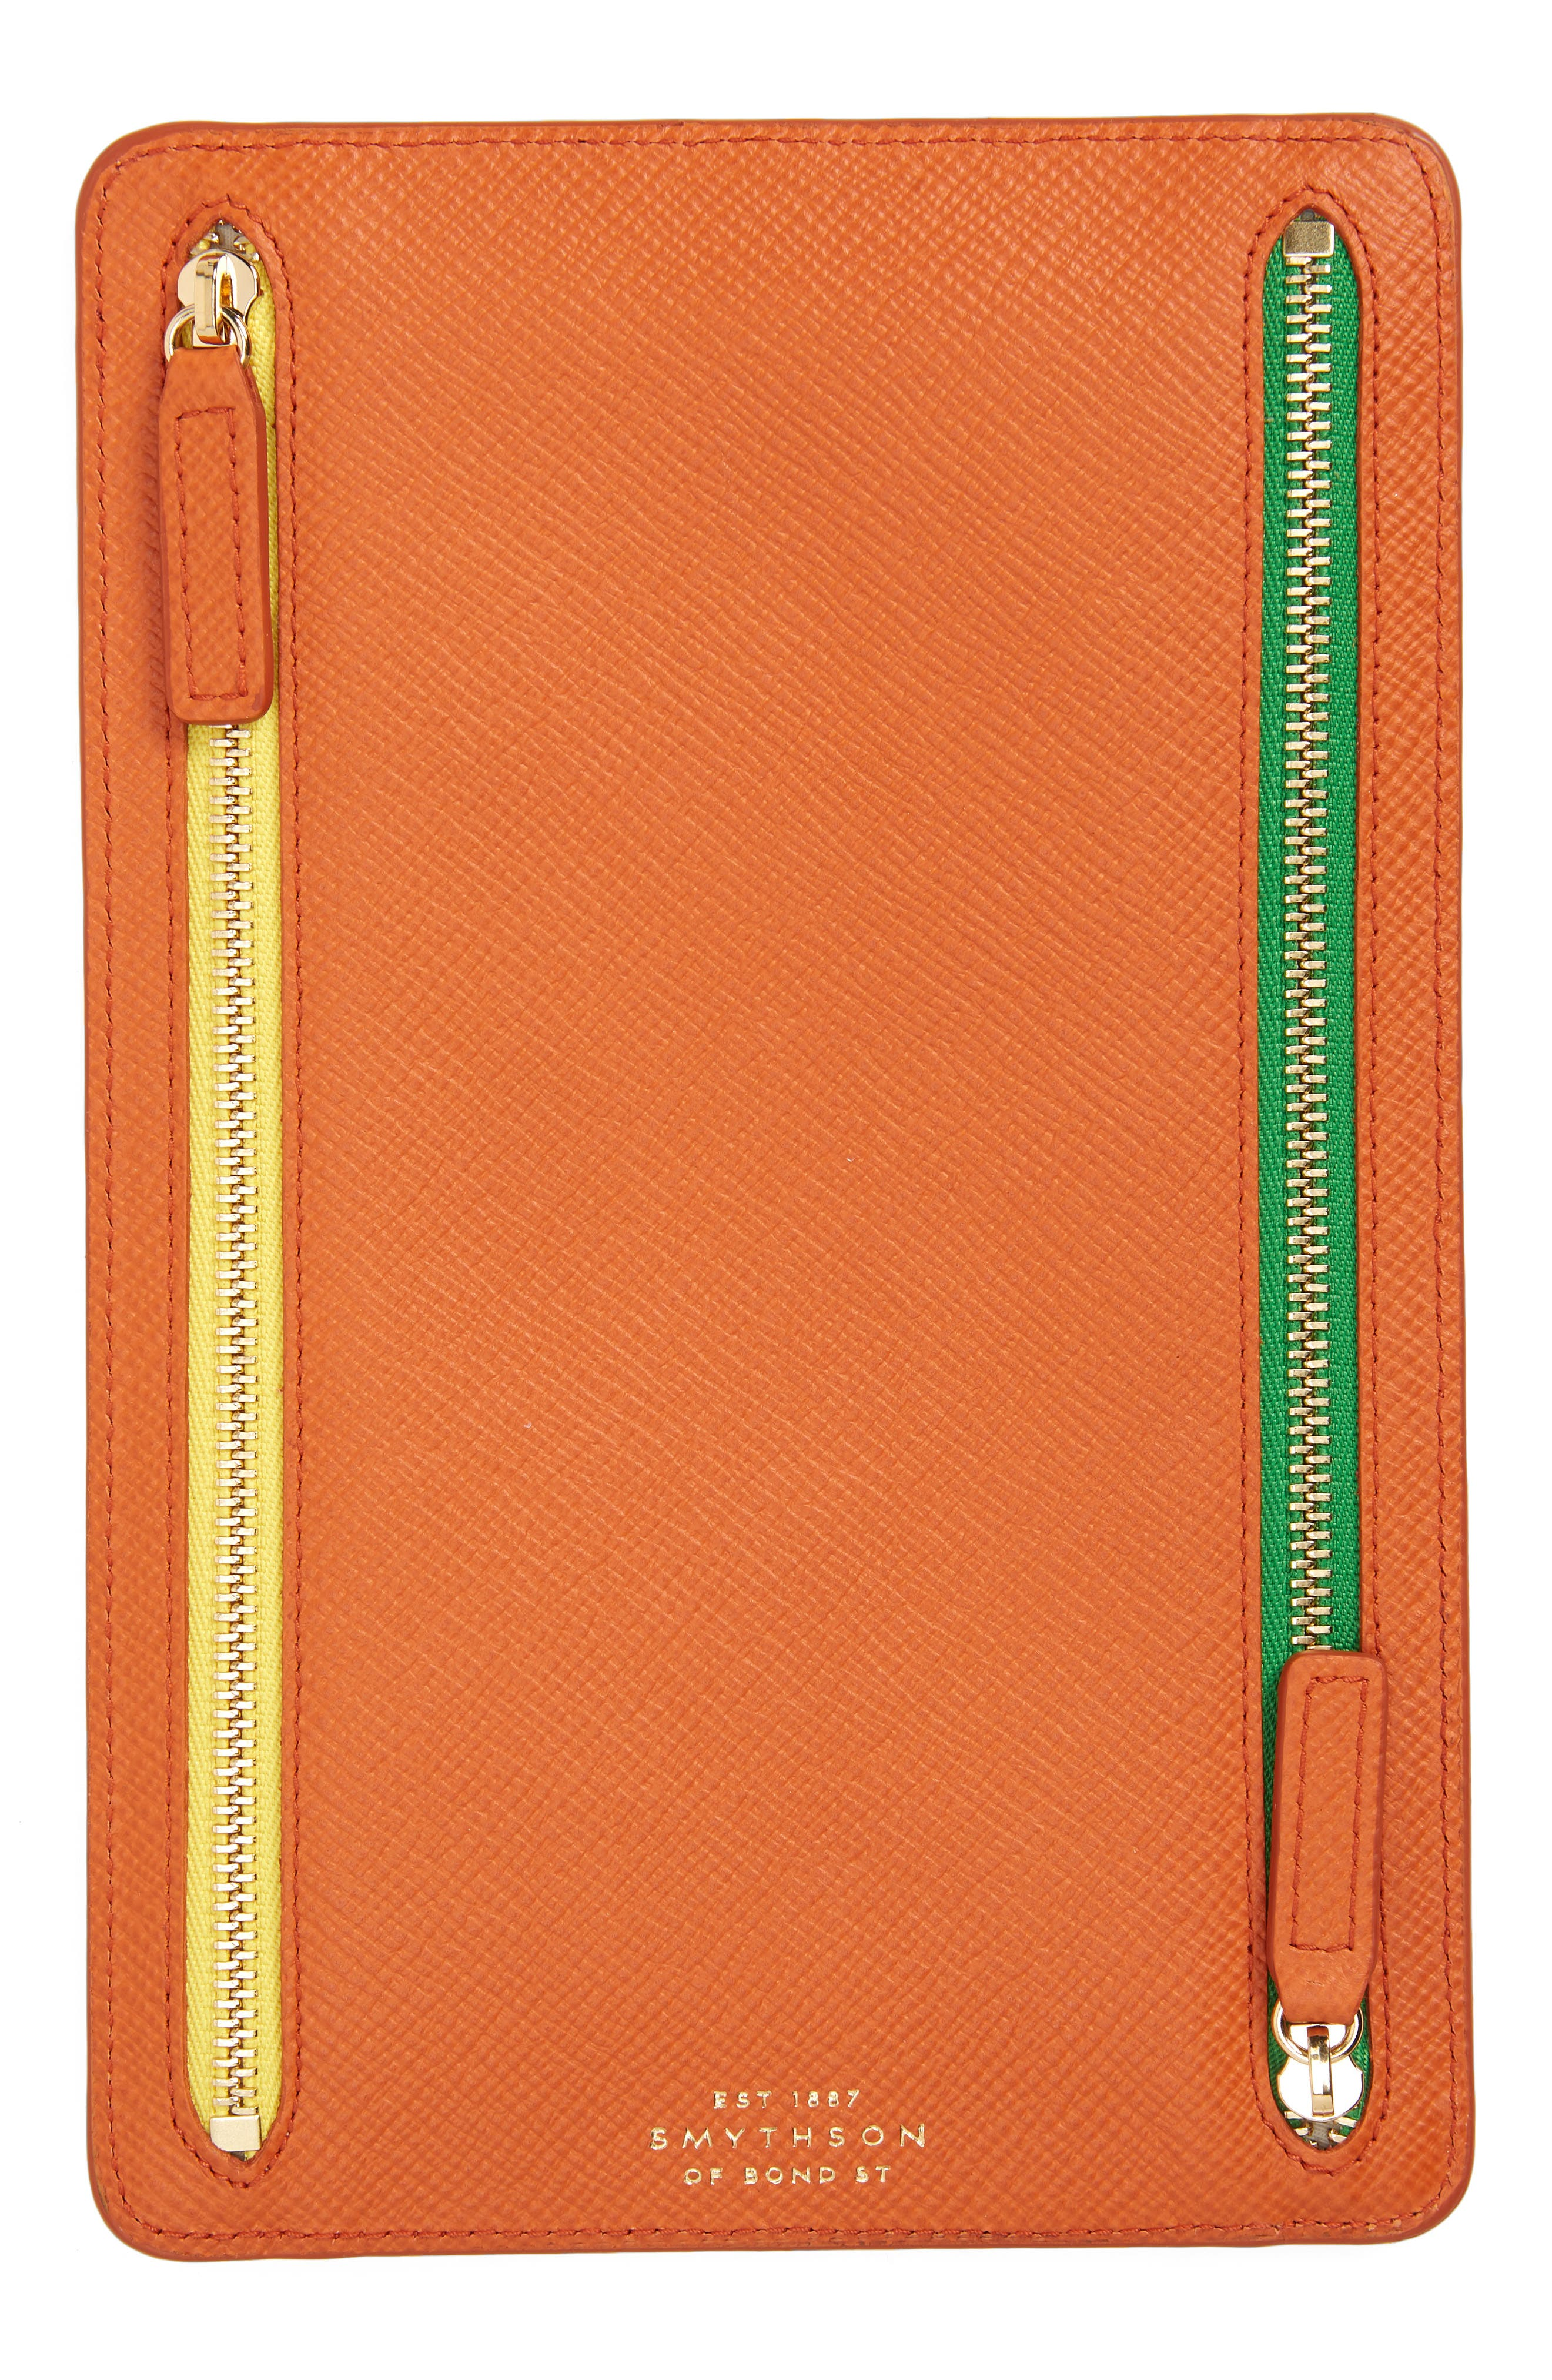 Panama Leather Currency Case,                             Main thumbnail 1, color,                             Papaya